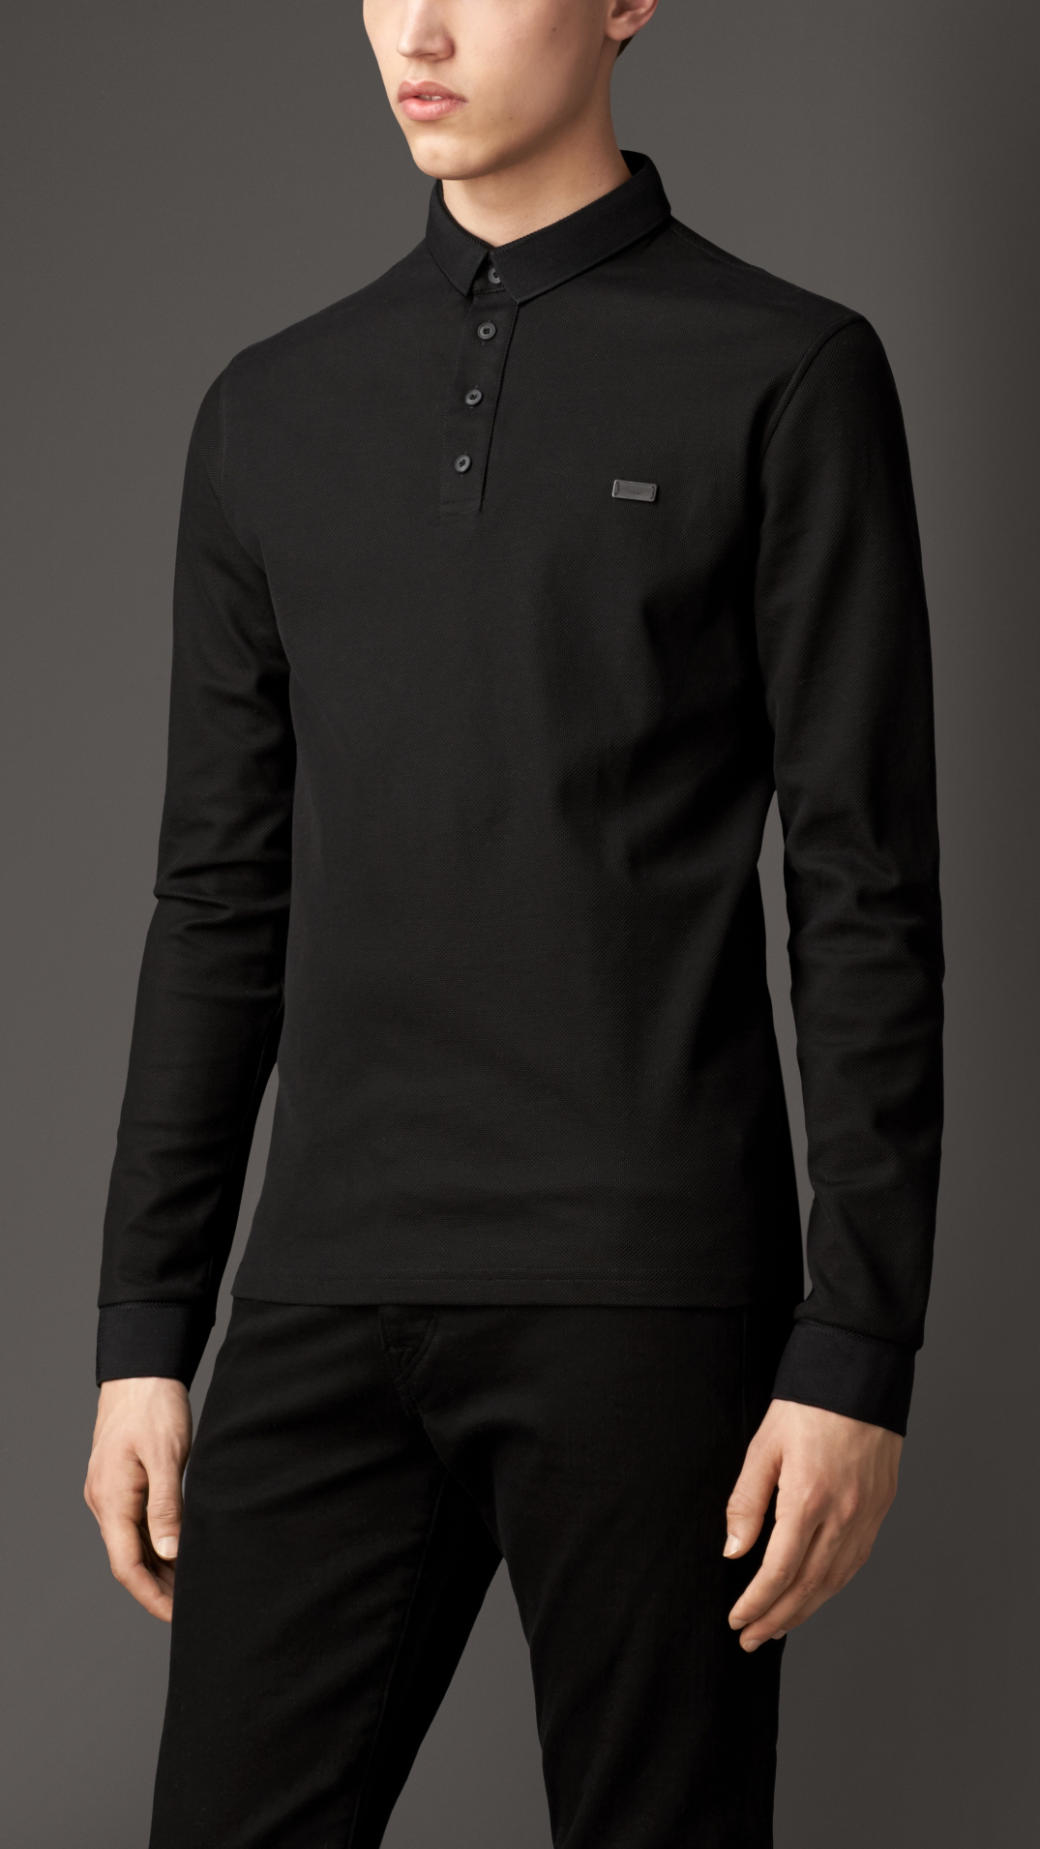 Burberry long sleeve cotton polo shirt in black for men lyst for Black cotton polo shirt